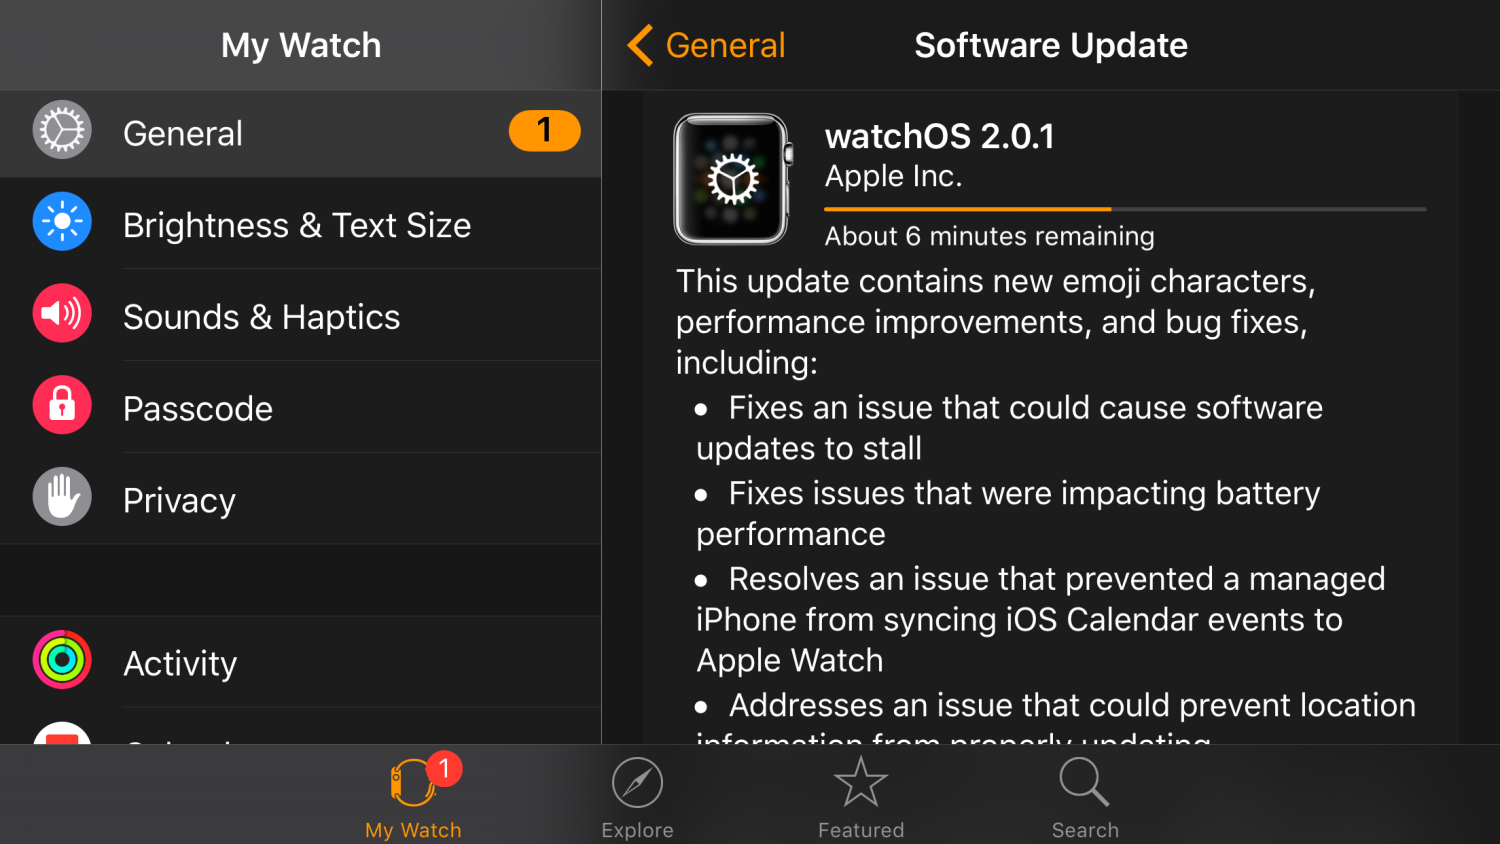 Apple WatchOS 2.0.1